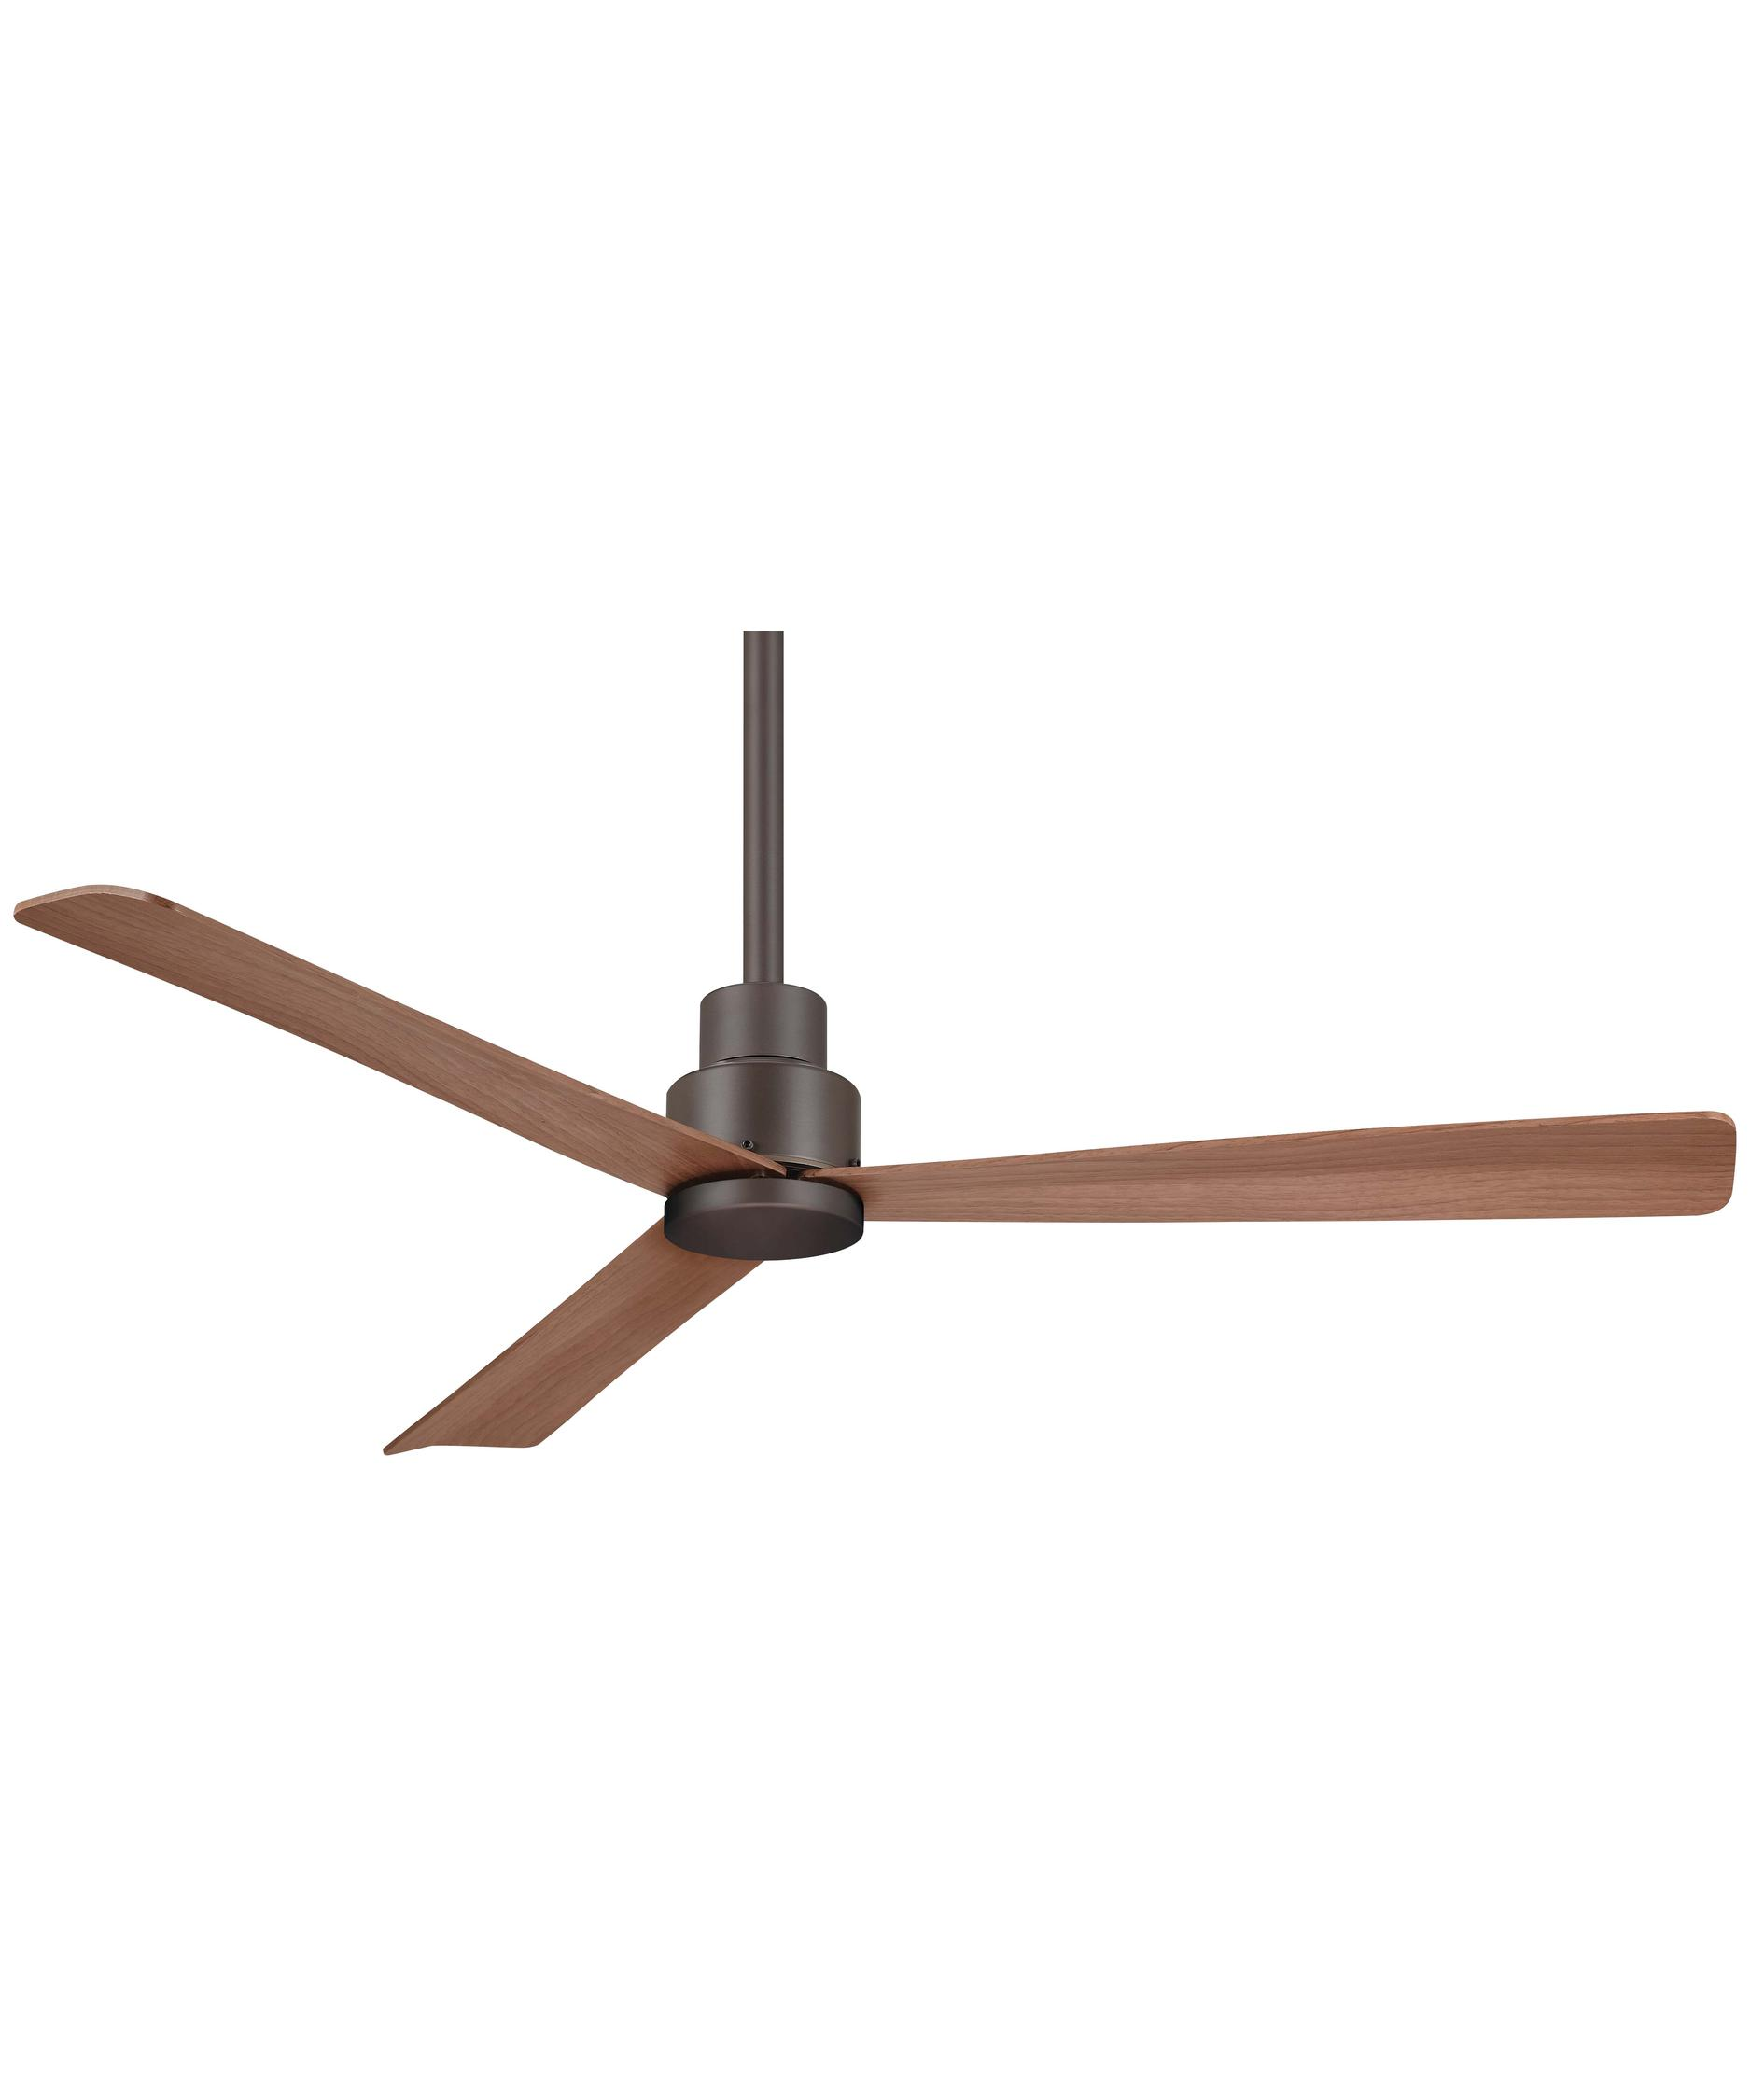 Minka Aire Simple 52 Inch 3 Blade Ceiling Fan | Capitol Lighting 1 ...:Minka Aire Simple 52 Inch 3 Blade Ceiling Fan | Capitol Lighting  1-800lighting.com,Lighting